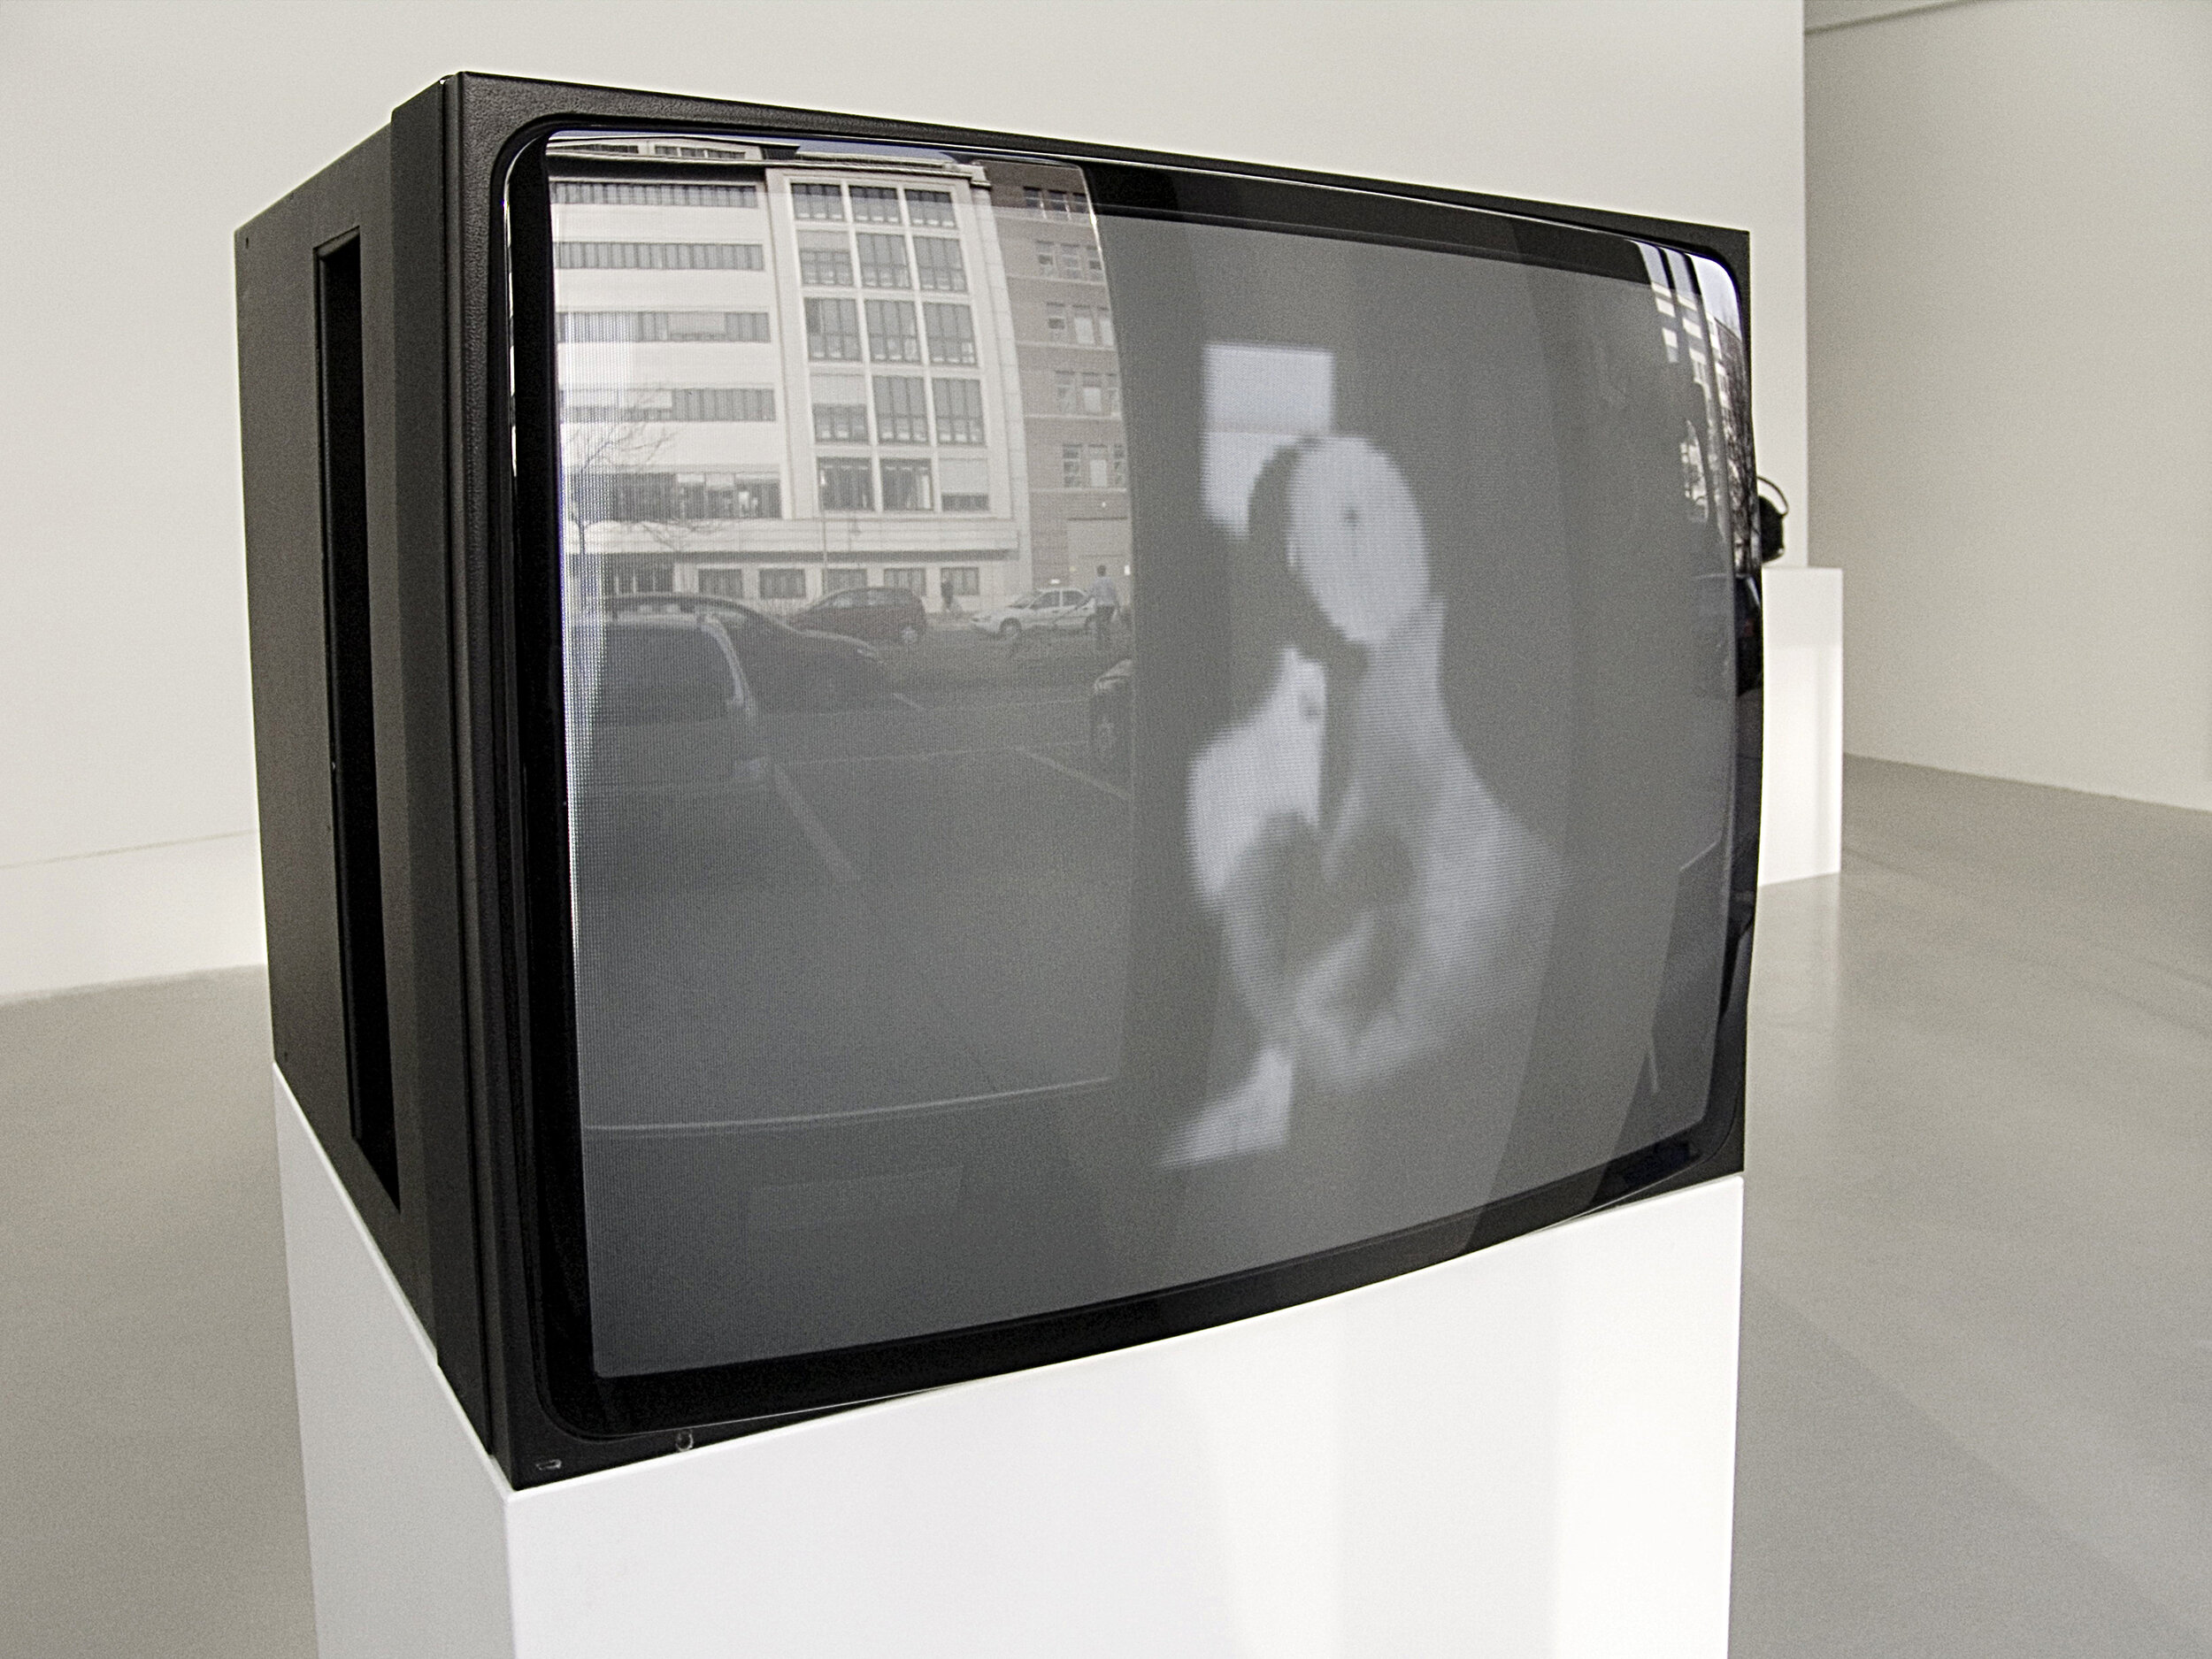 8 Minuten , video, installation view at Charim Ungar Contemporary, Berlin, 2010